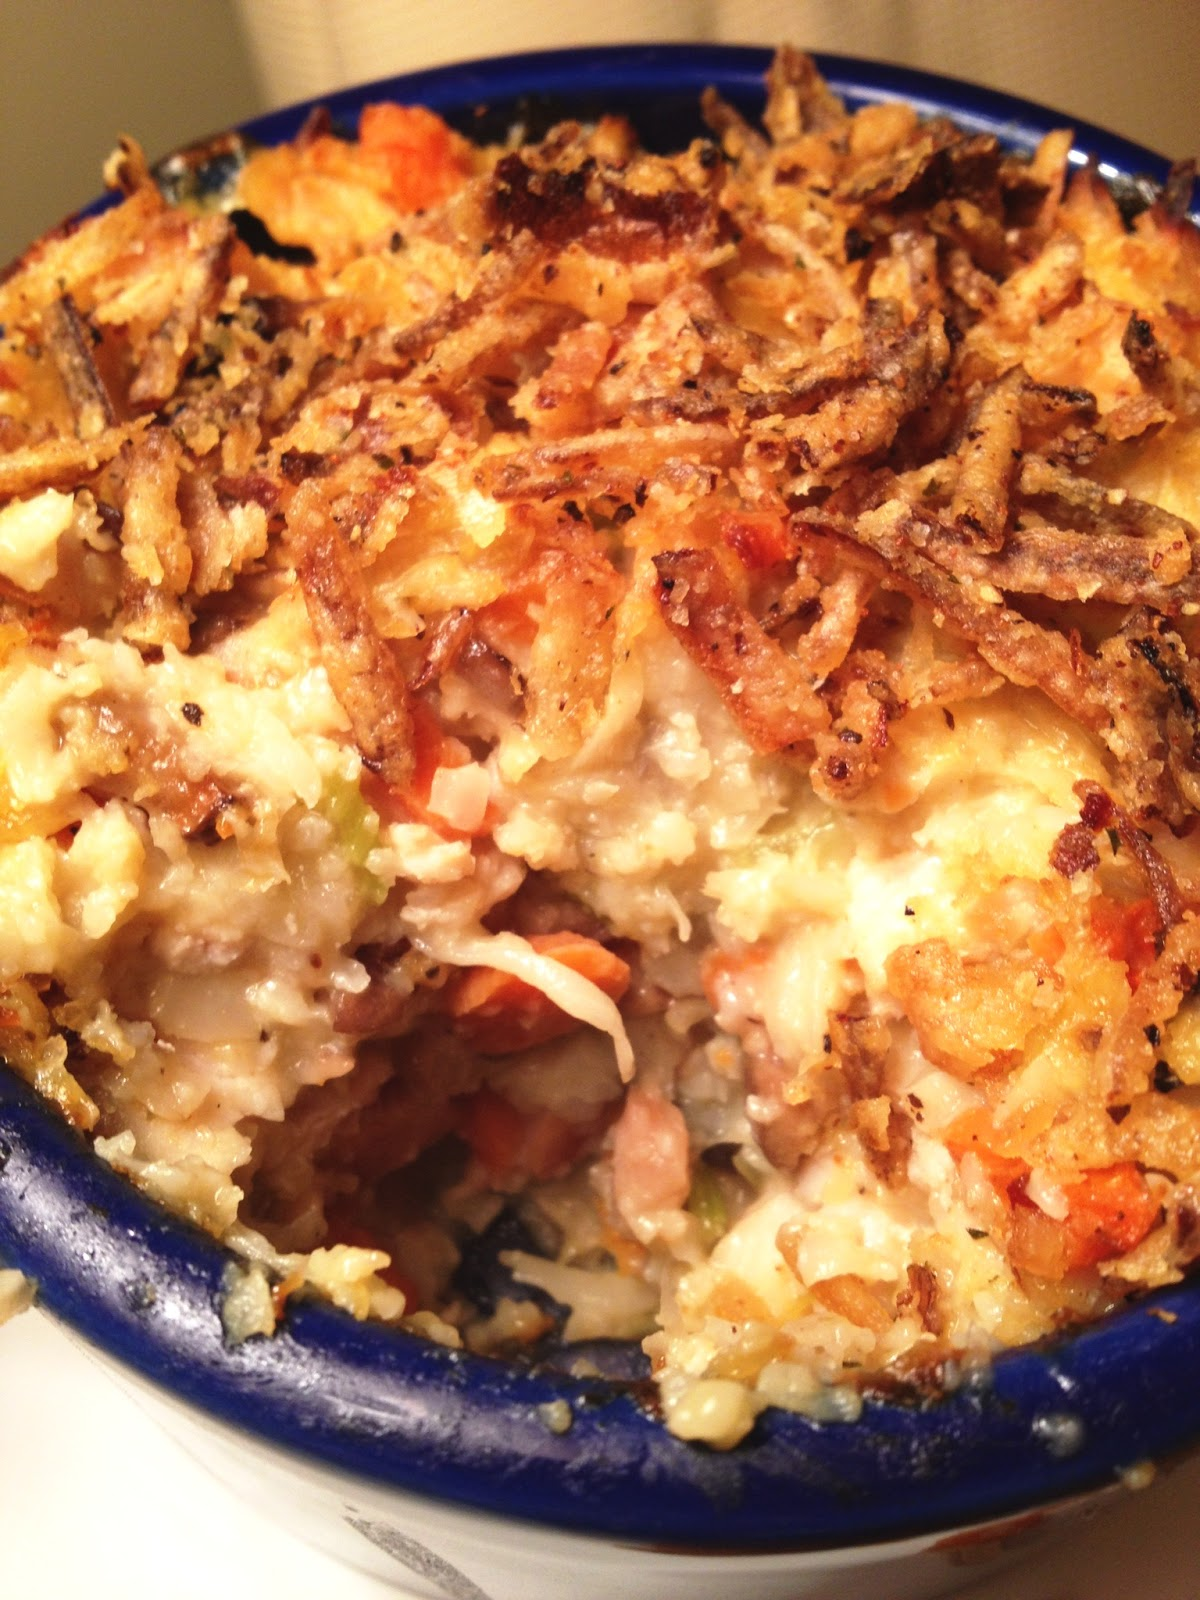 Crispy Rice And Turkey Casserole Recipes — Dishmaps